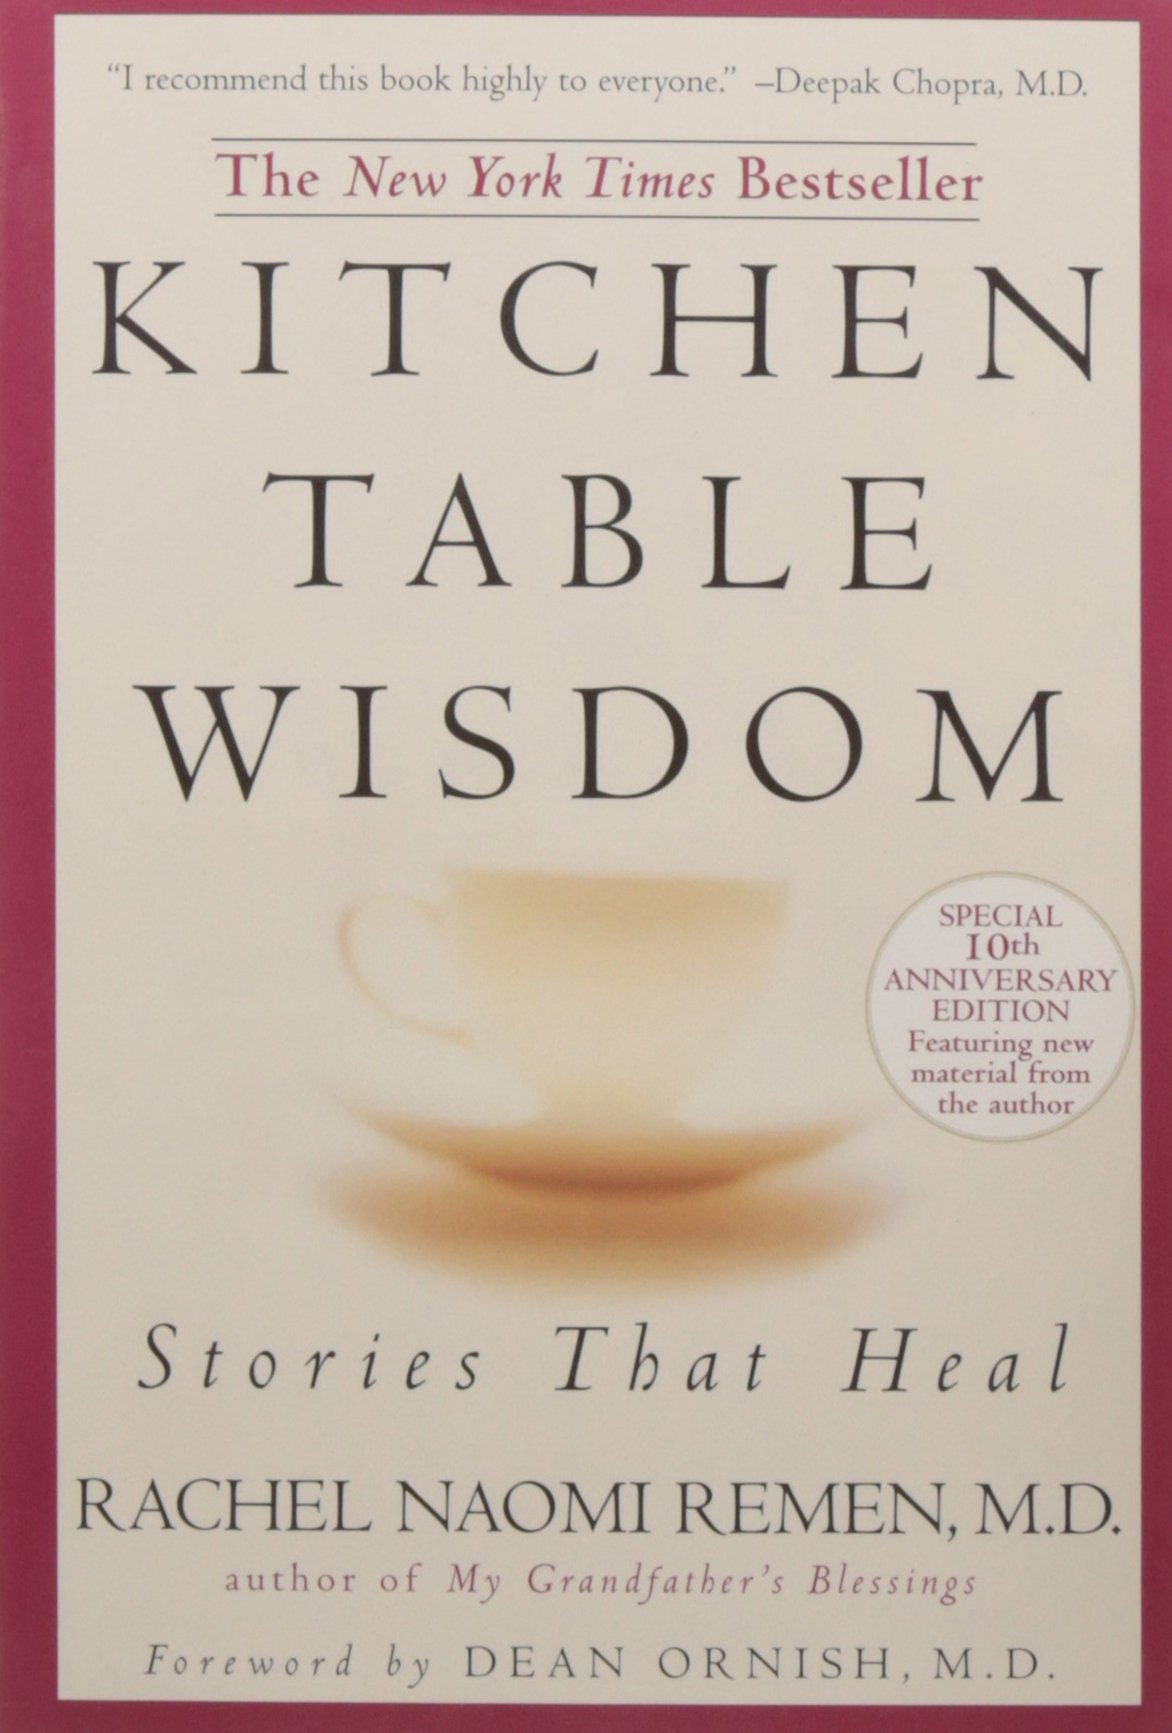 Kitchen Table Wisdom: Stories That Heal, 10th Anniversary Edition: Rachel  Naomi Remen: 8601400084052: Amazon.com: Books